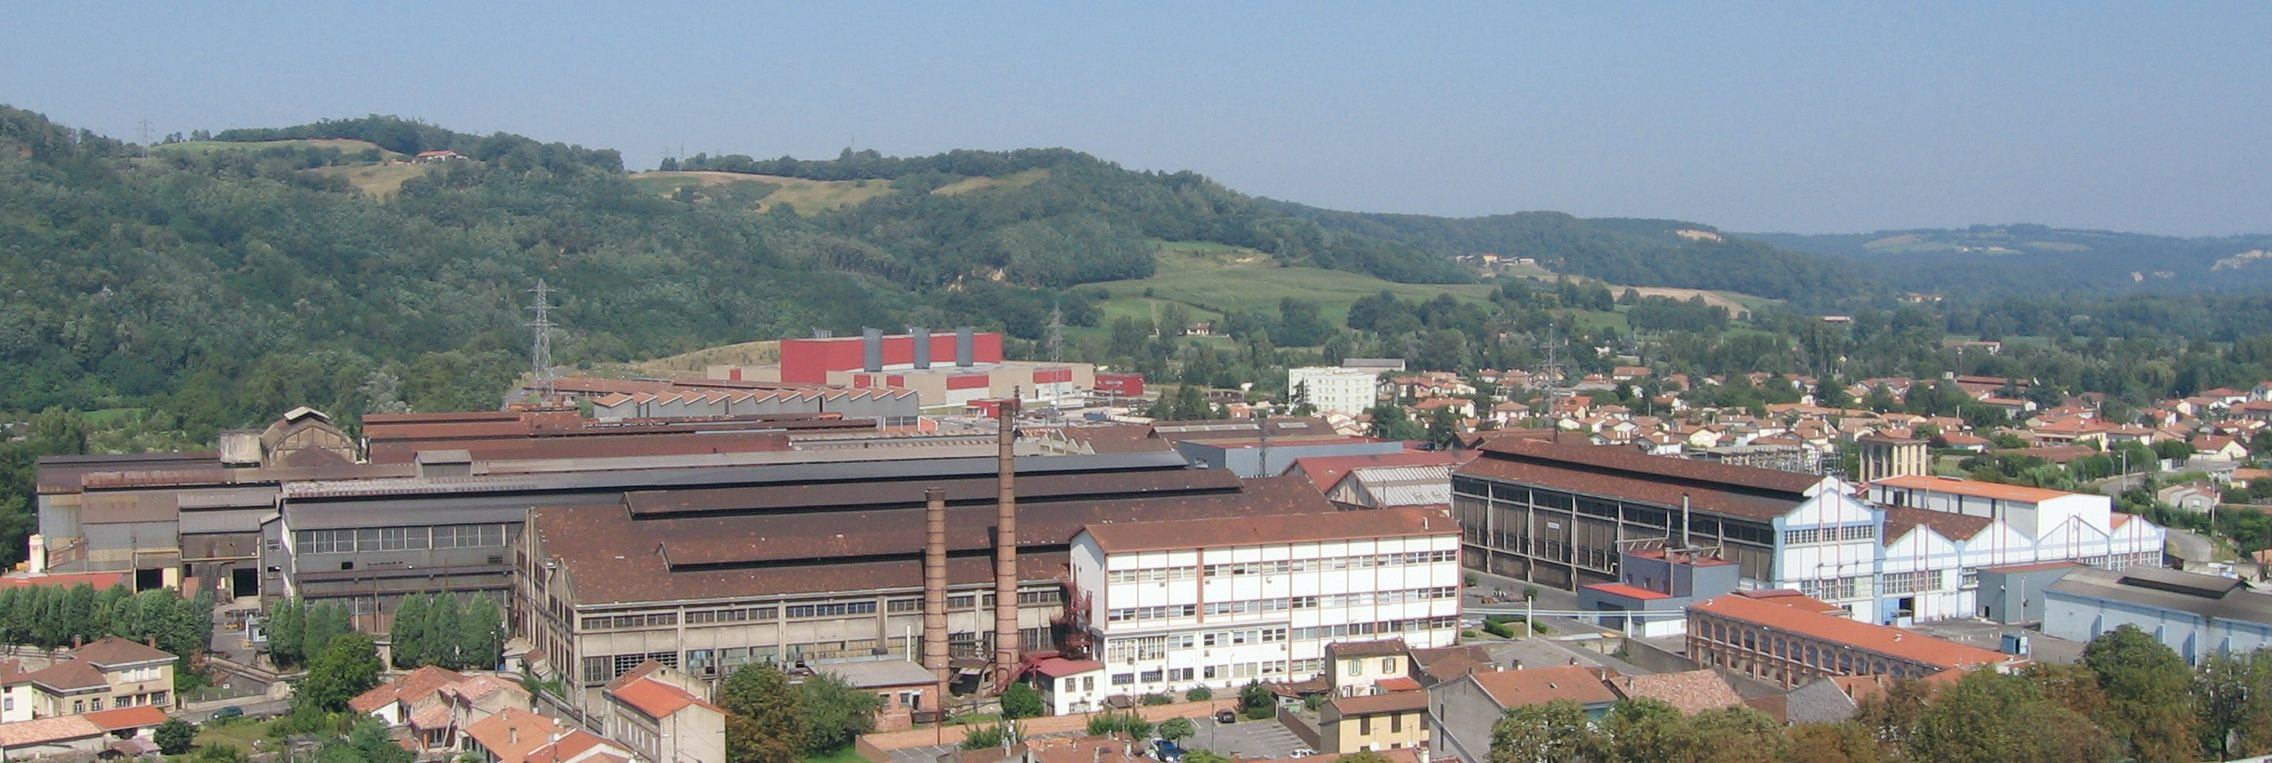 Pamiers France  city images : Usine de Pamiers Wikimedia Commons